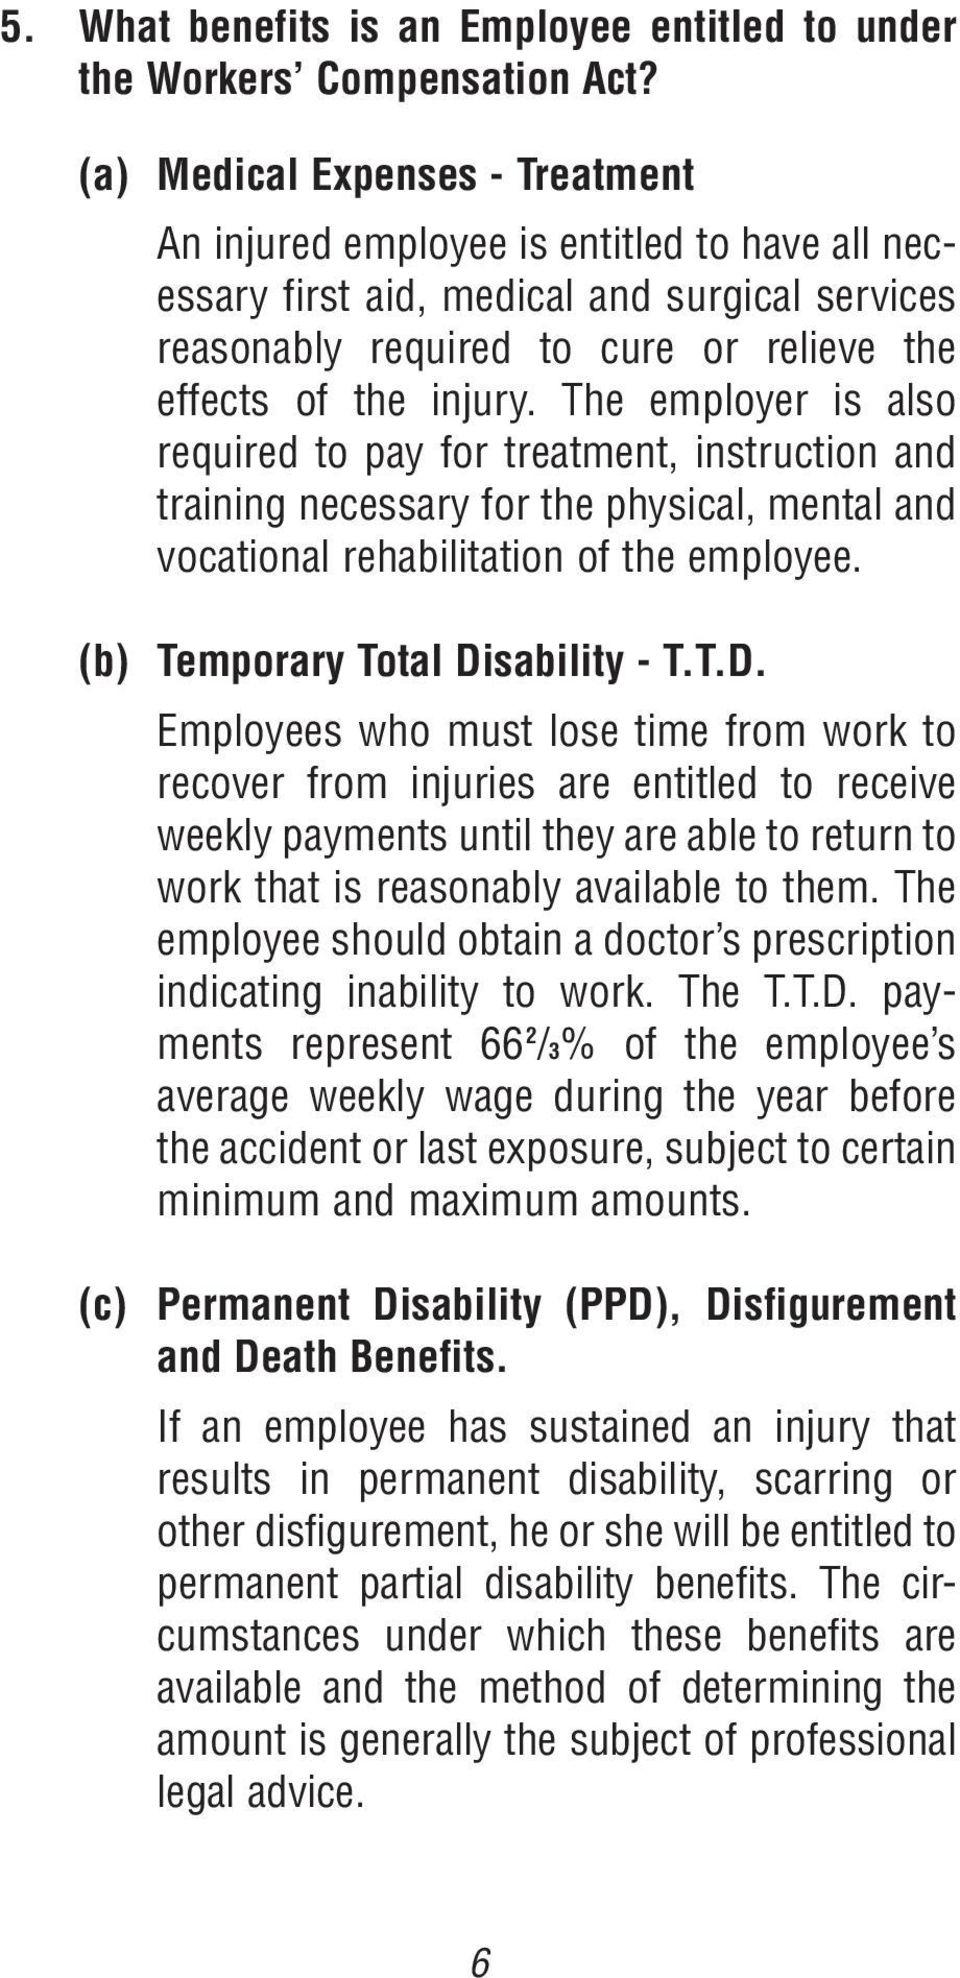 The employer is also required to pay for treatment, instruction and training necessary for the physical, mental and vocational rehabilitation of the employee. (b) Temporary Total Di